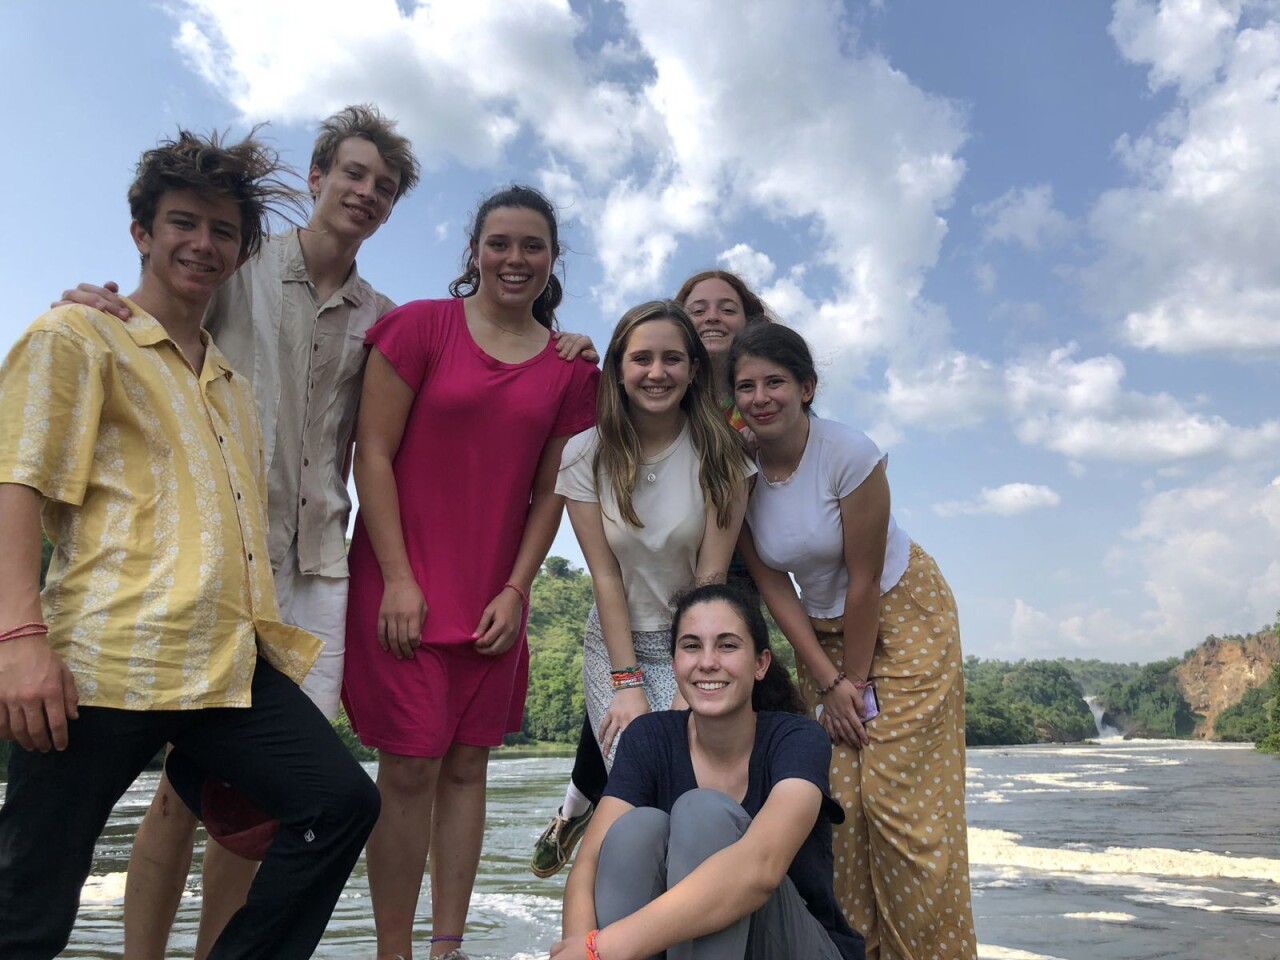 Ray Wipfli, La Salle High School's Arik Billings, Francesca Christensen, Carolyn Gold, Jordyn Hart, Audrey Melillo and Arianna de la Torre spent a week traveling in Uganda and working with students there on projects related to health, nutrition and self-expression.